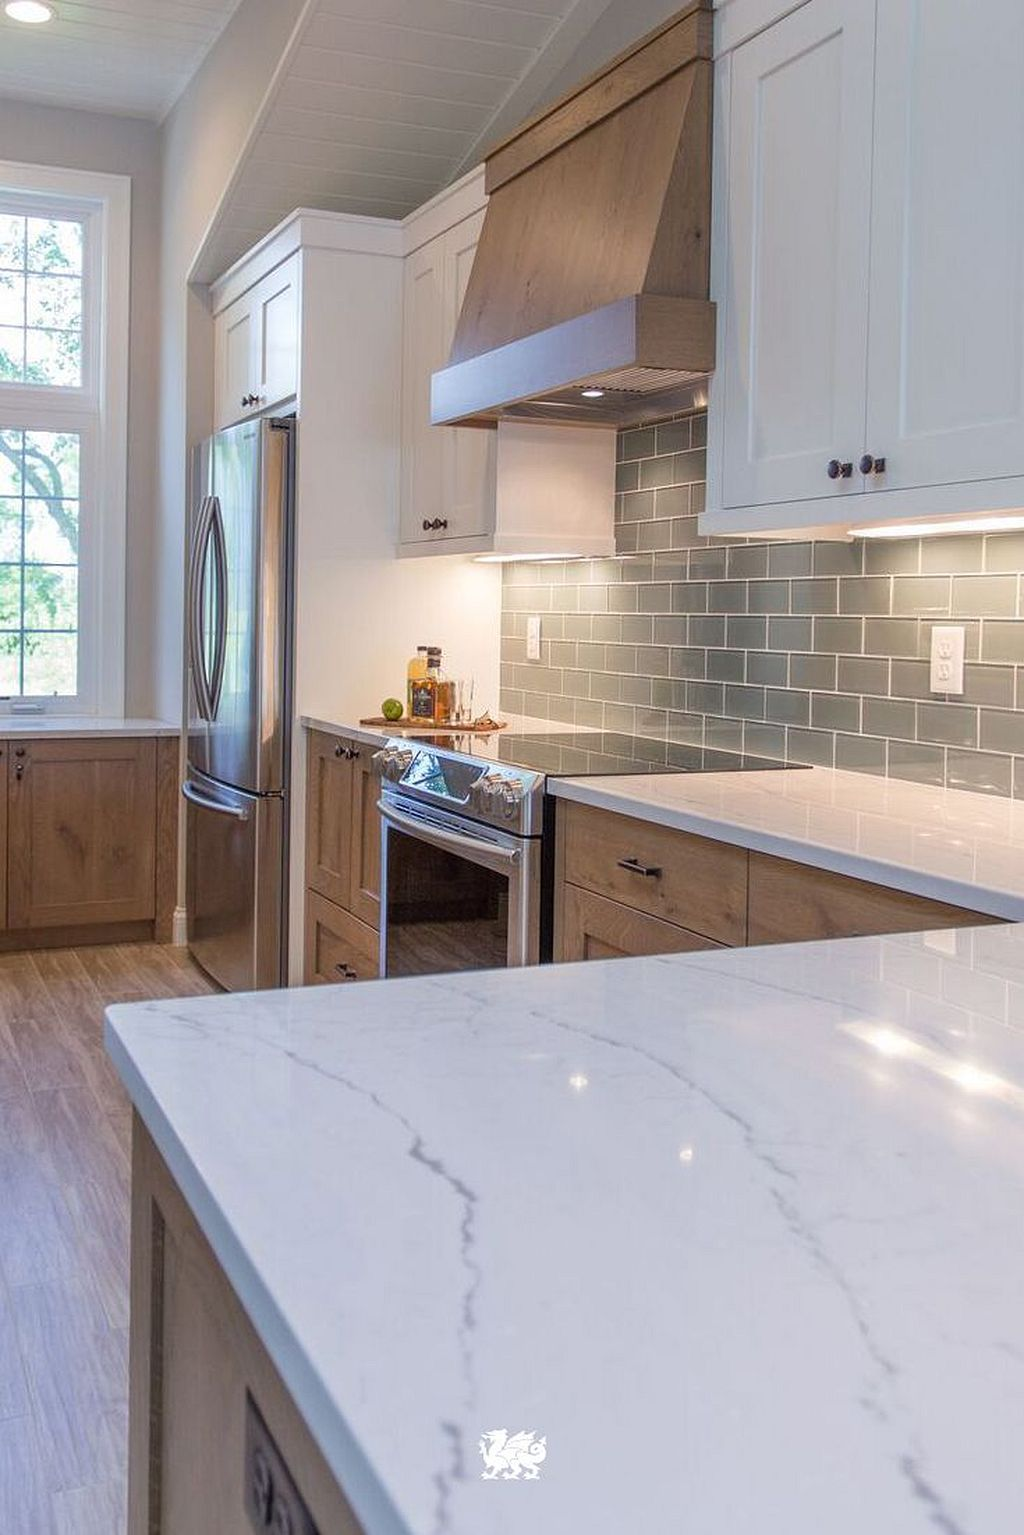 Awesome 20 Awesome Ideas To Disorder Free Kitchen Countertops Https Kidmagz Com 20 Awesome Ideas To Disord Kitchen Renovation Kitchen Remodel Kitchen Design